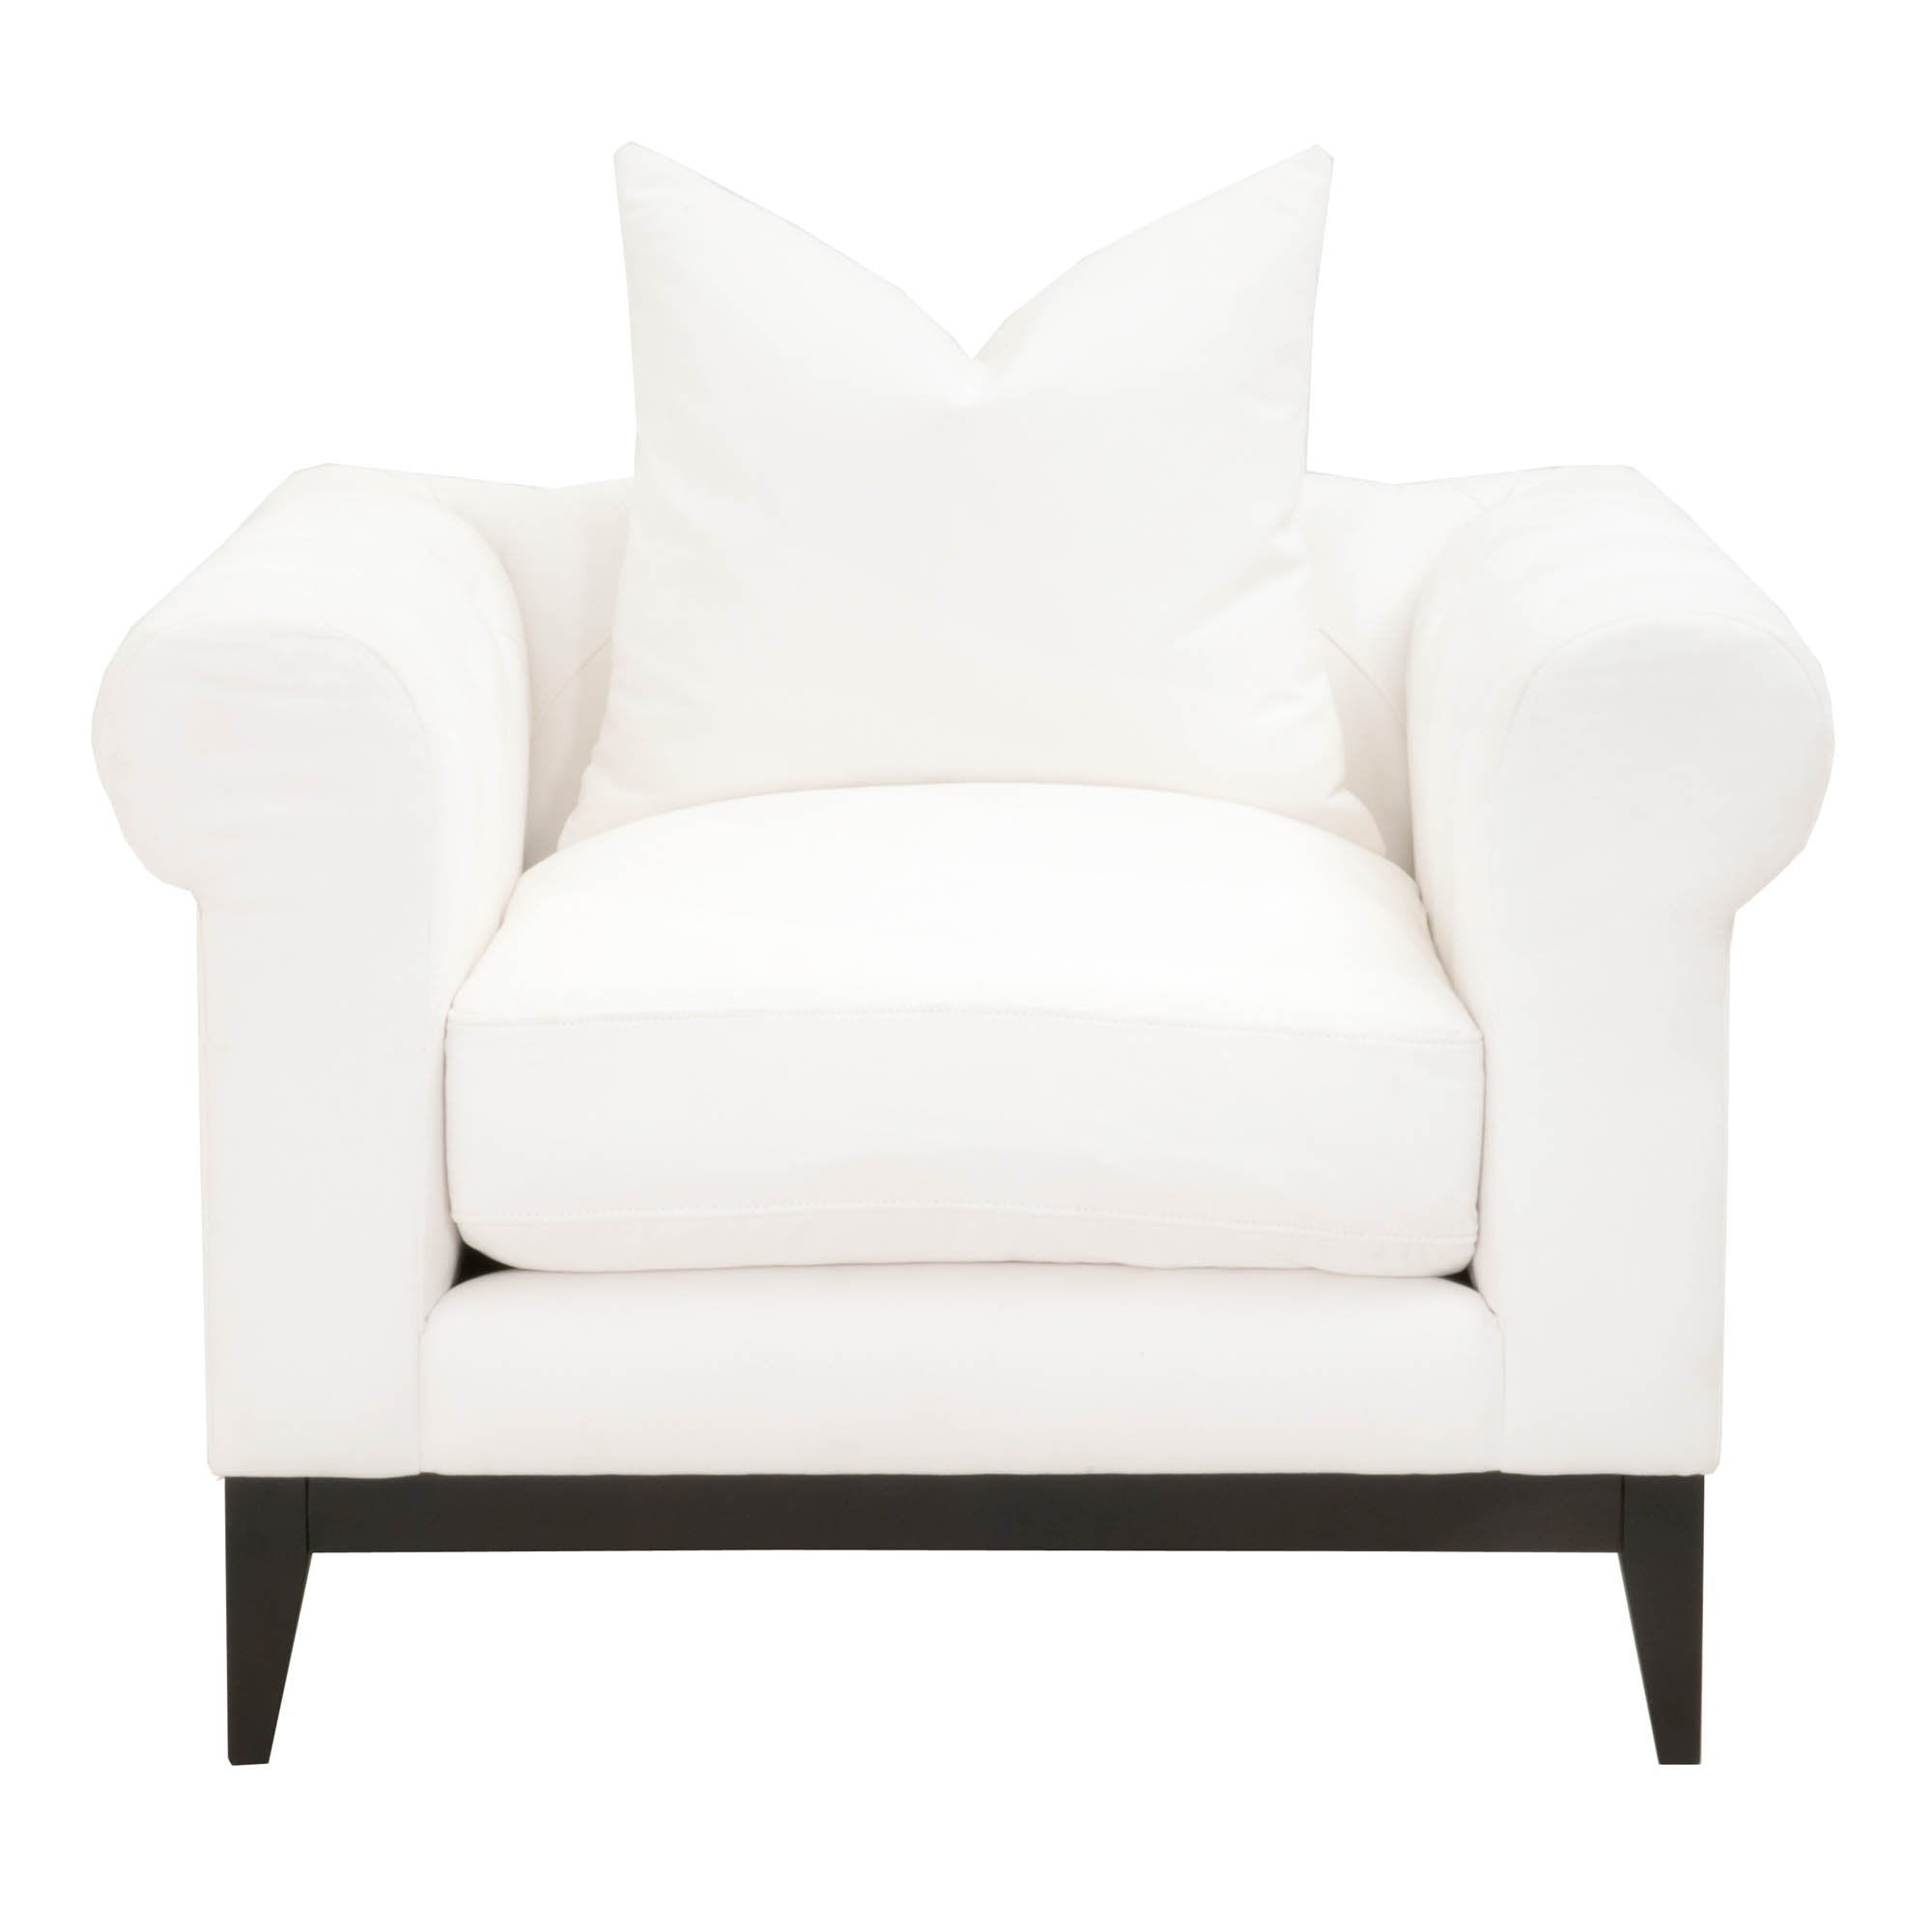 Tux Modern Chesterfield Sofa Chair in LiveSmart Peyton-Pearl